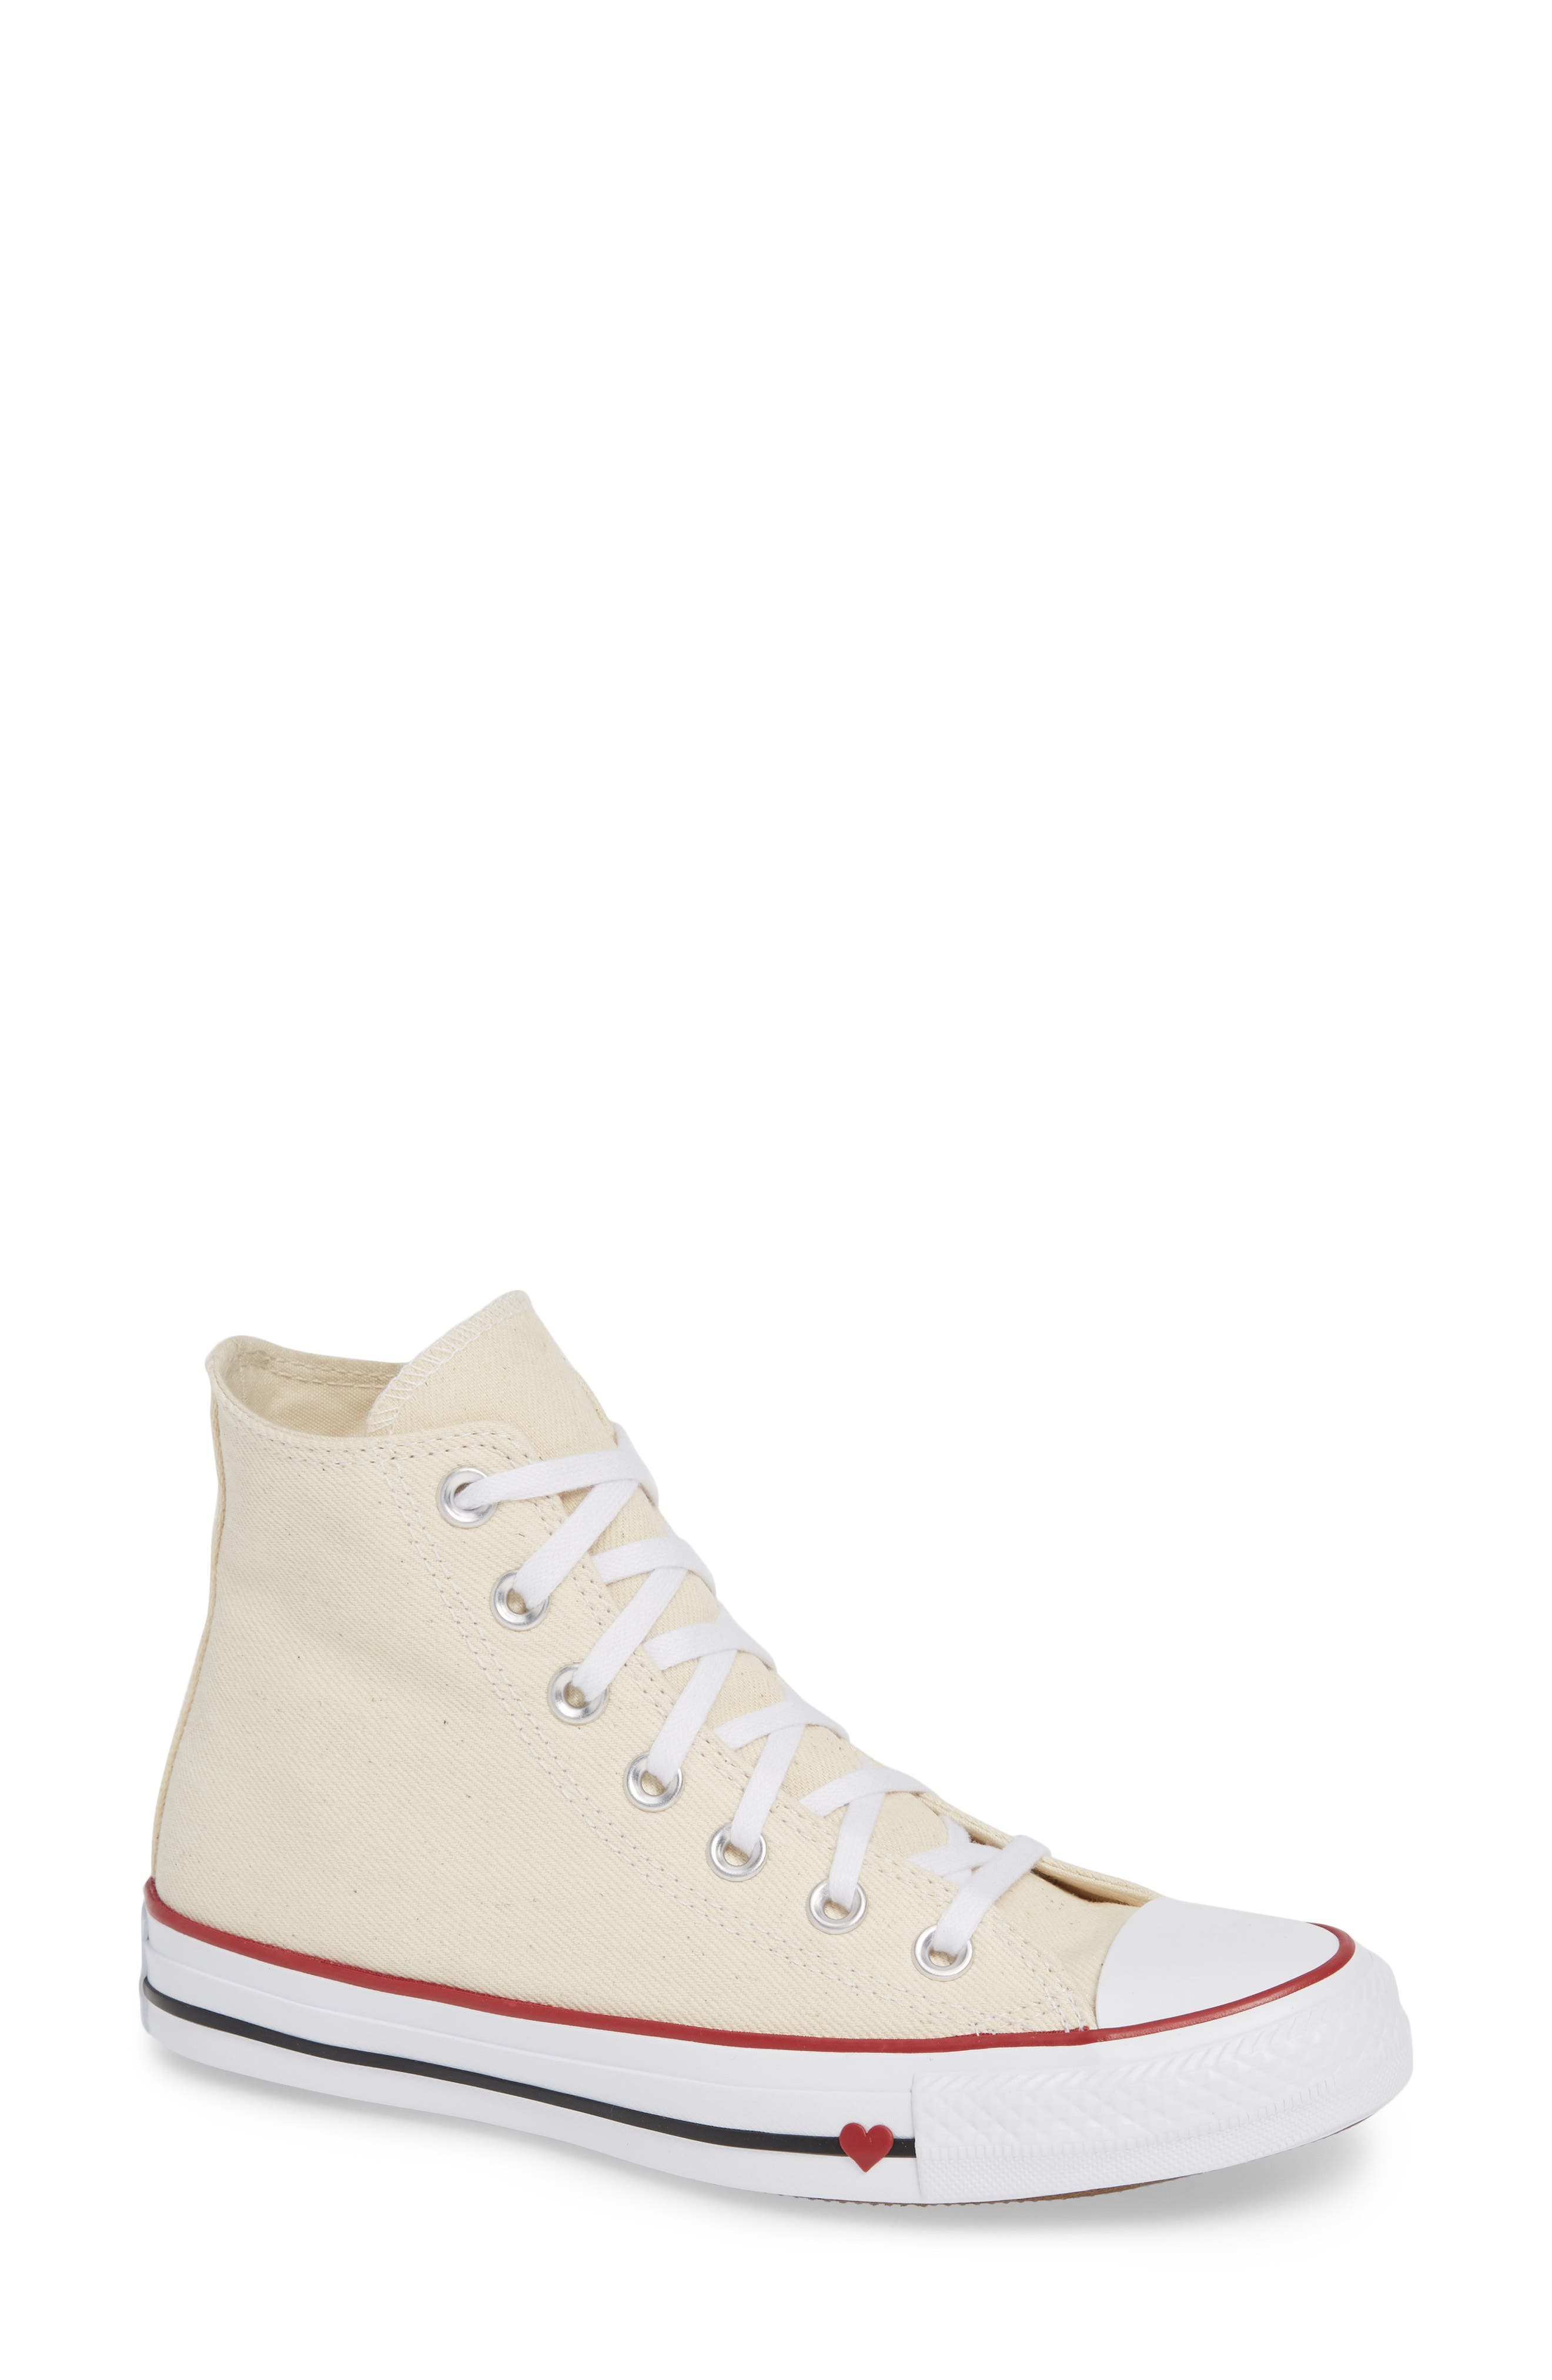 Converse Chuck Taylor All Star High Top Sneaker, Ivory